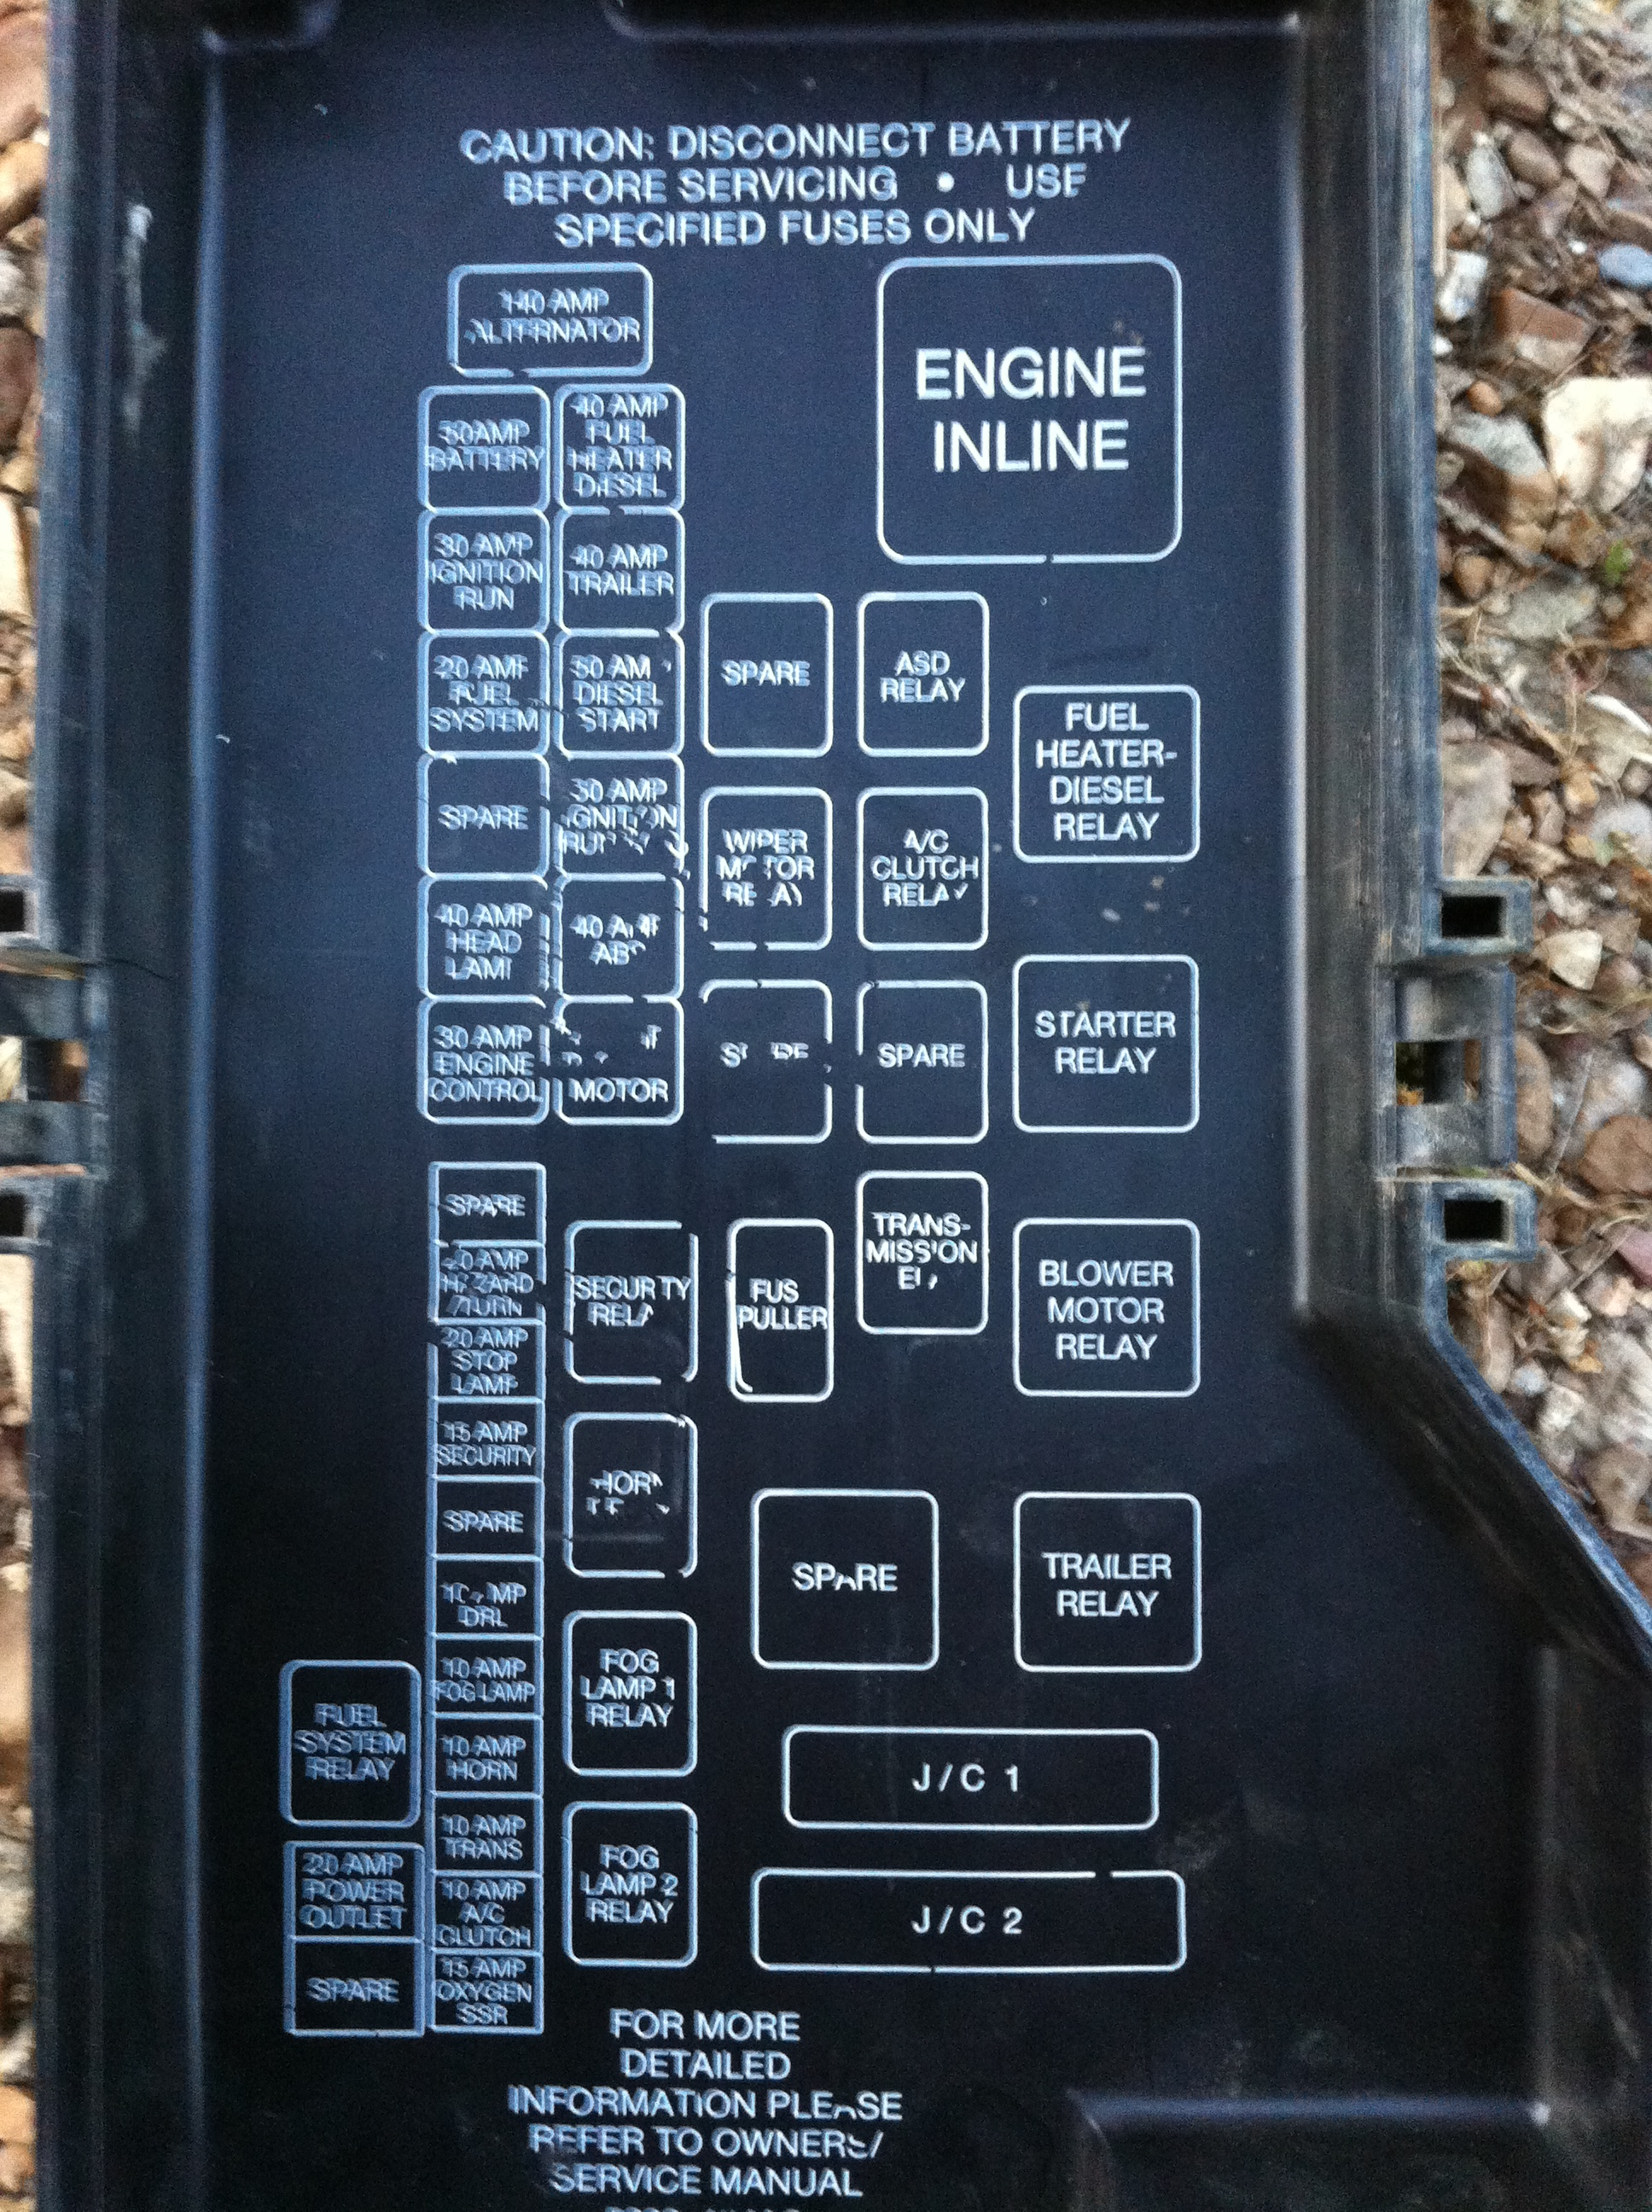 99 dodge ram fuse box diagram 98    ram    2500 with cummins engine blows 30 amp solenoid  98    ram    2500 with cummins engine blows 30 amp solenoid